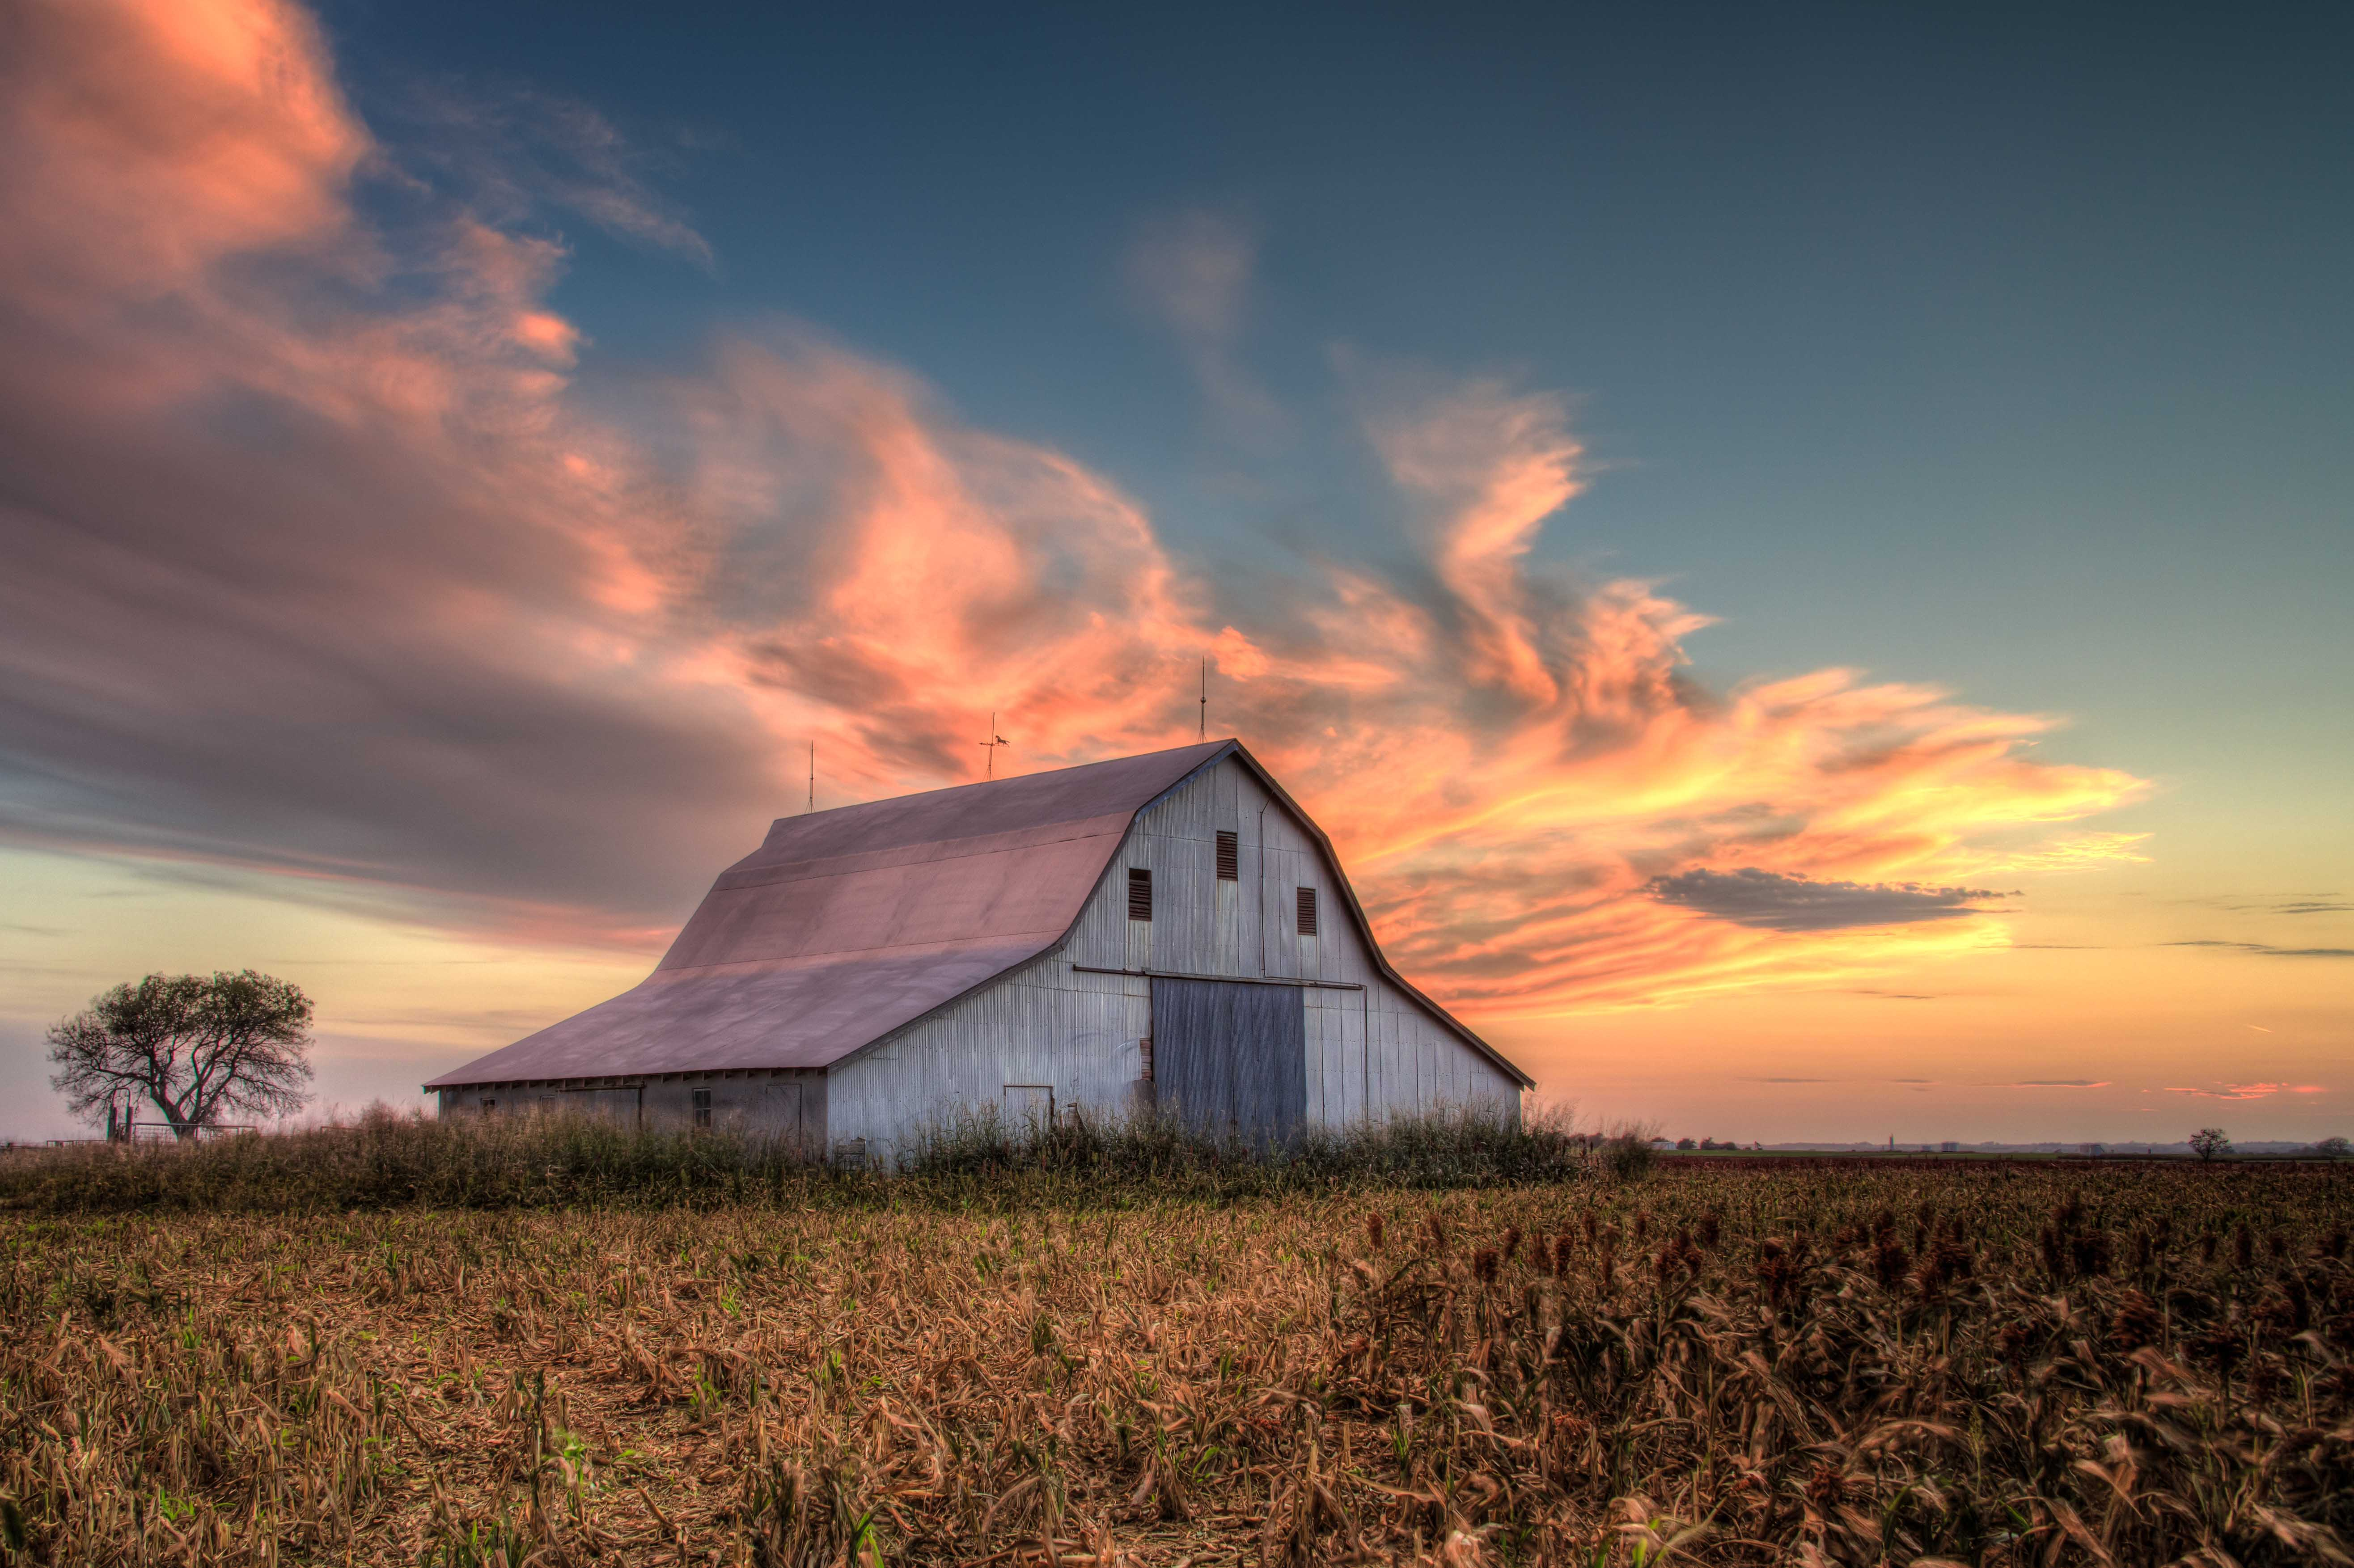 """Spacious Skies"" by Garry Wilcox"